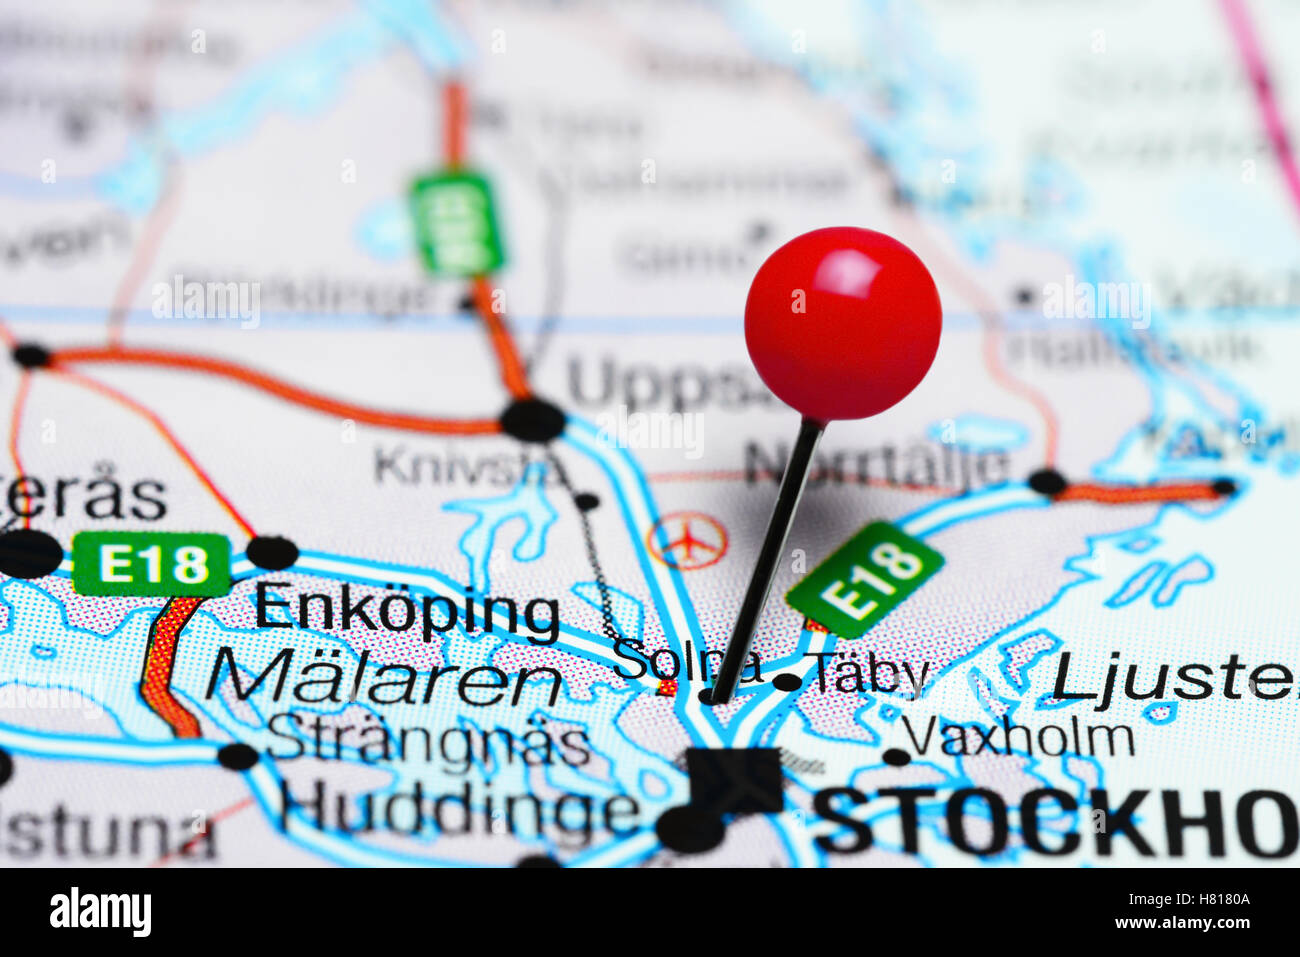 Solna Pinned On A Map Of Sweden Stock Photo Royalty Free Image - Sweden map solna